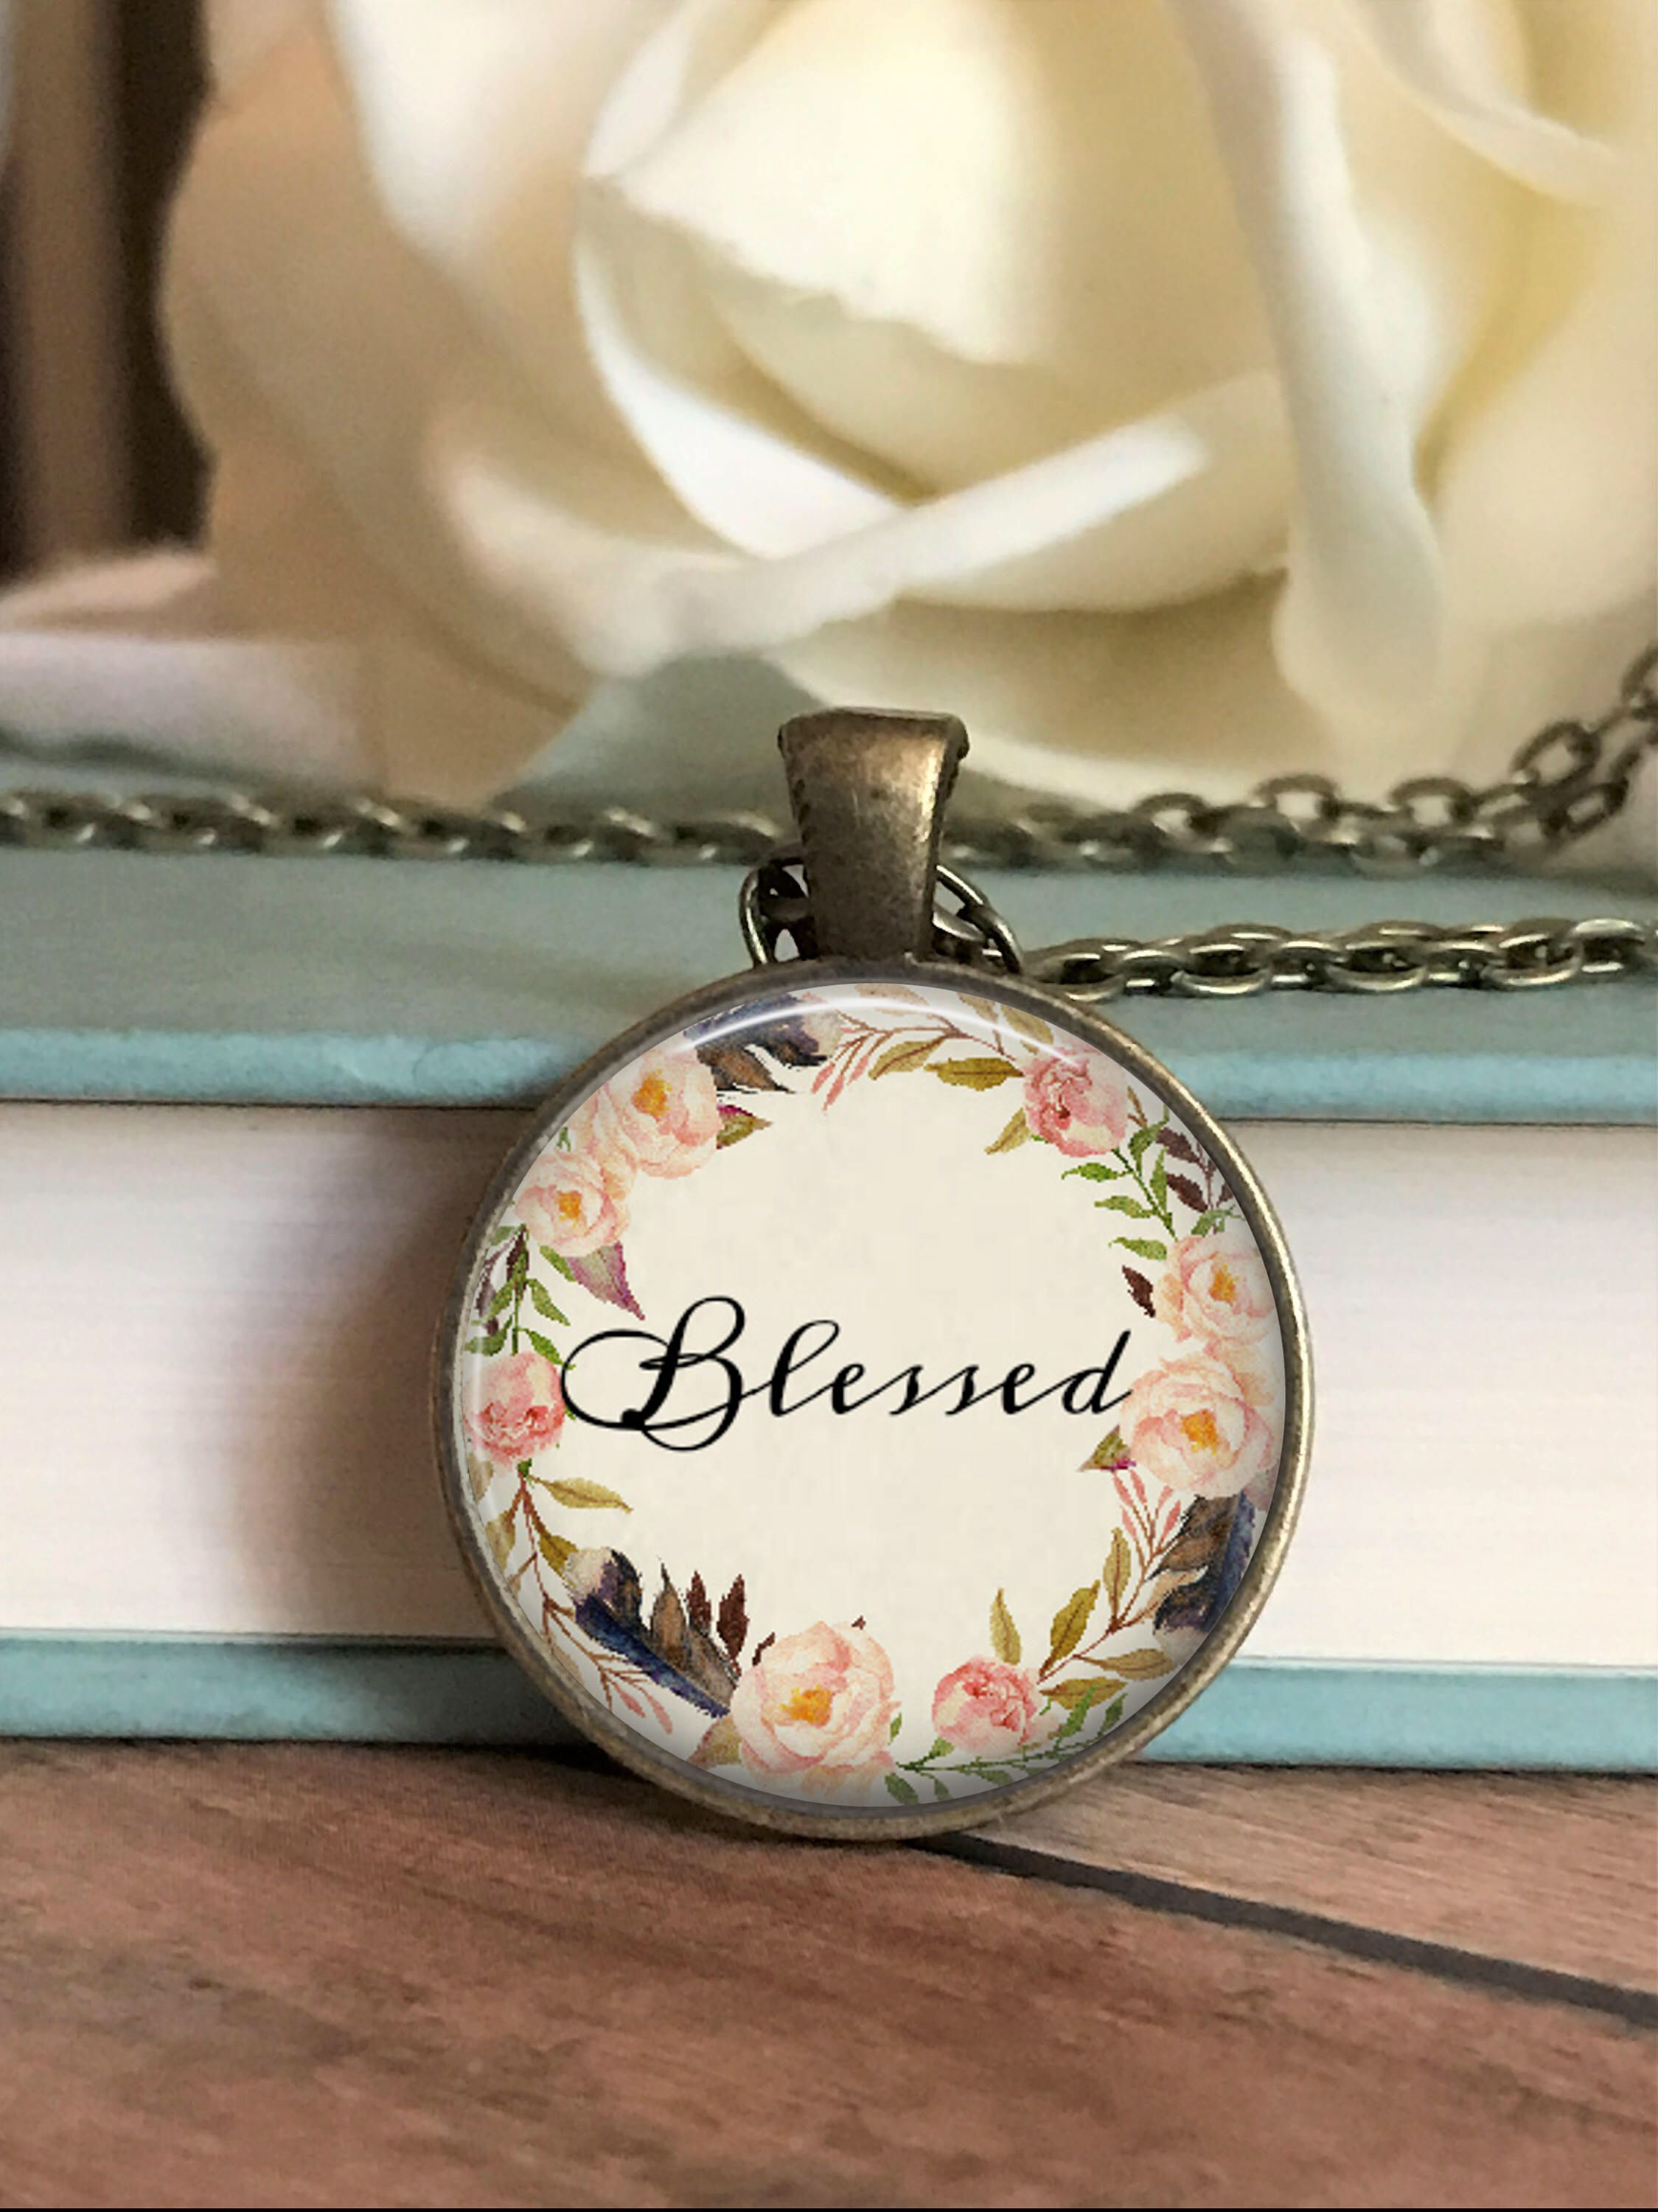 Blessed necklace christian necklace scripture necklace